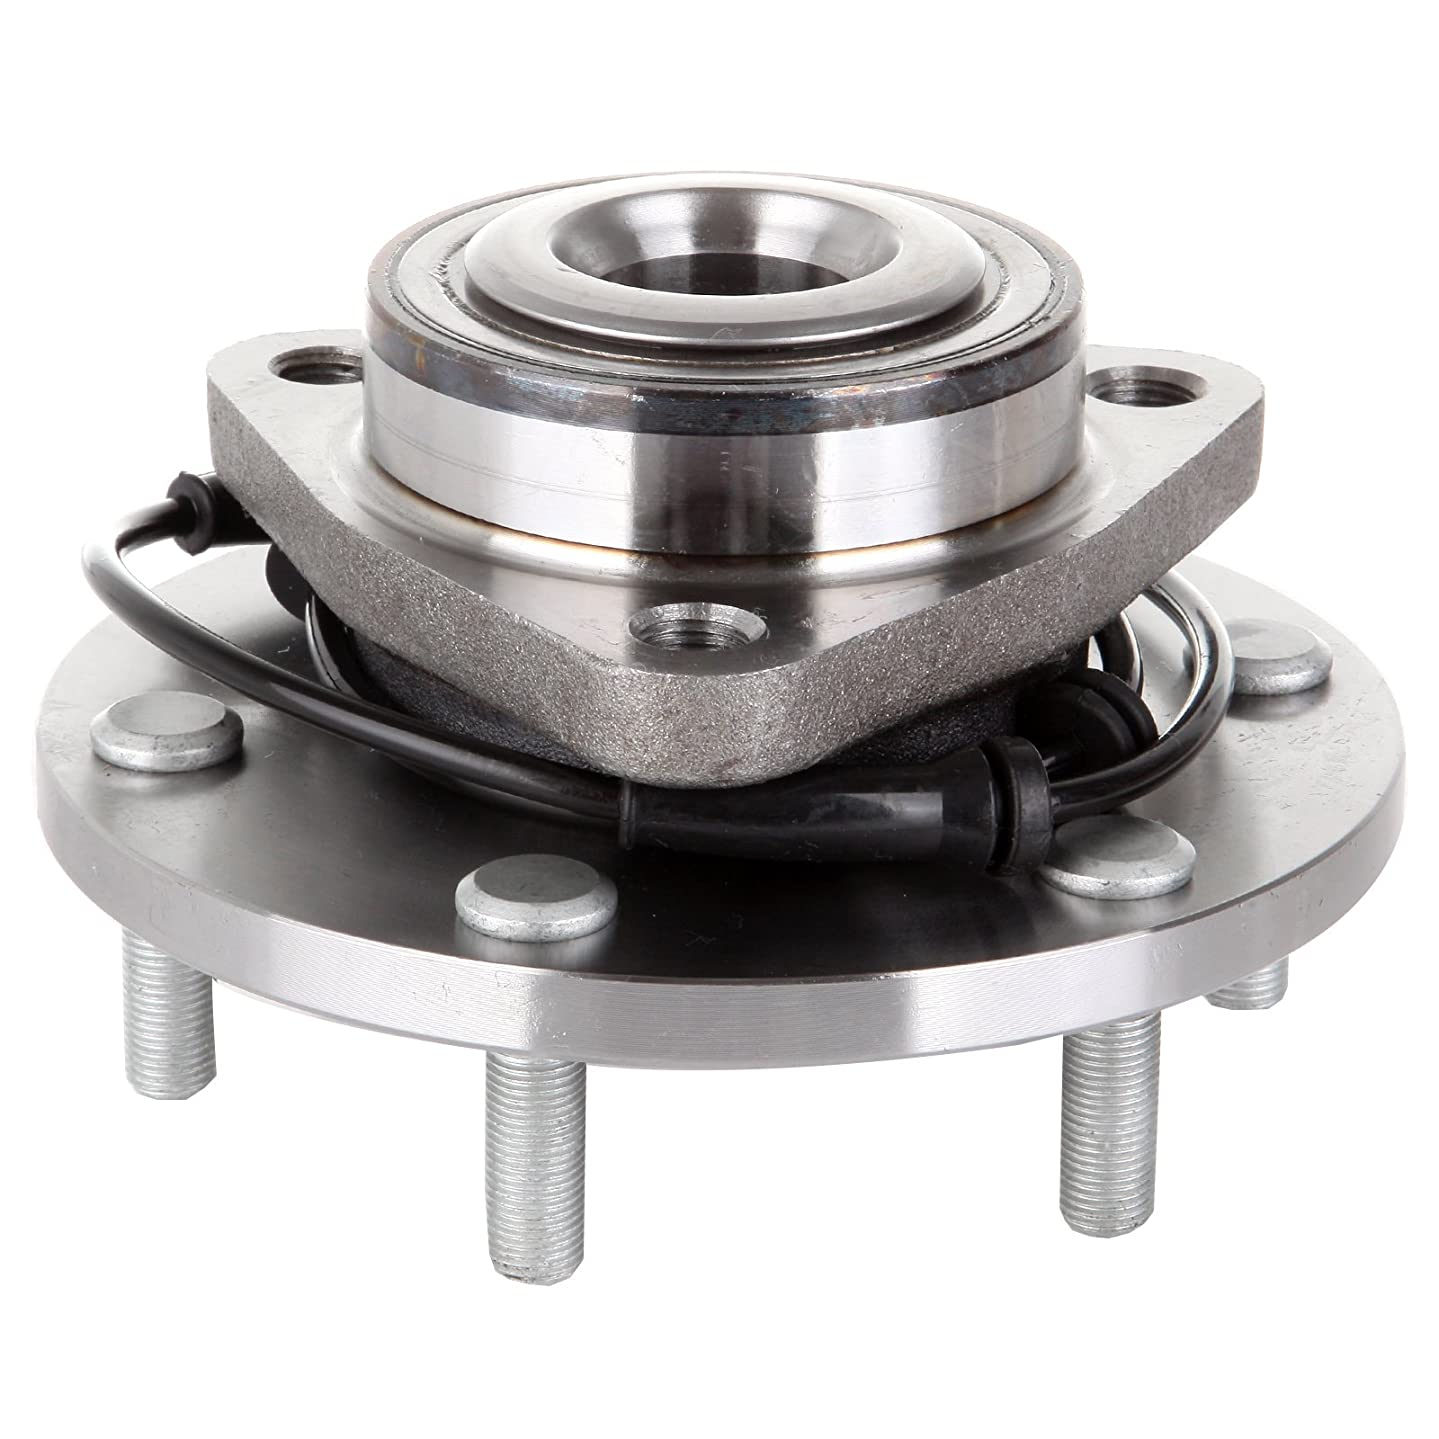 ECCPP Front Wheel Hub Bearing Assembly 6 Lugs w/ABS for 2008-2012 Nissan Armada Nissan Titan Compatible with 515125